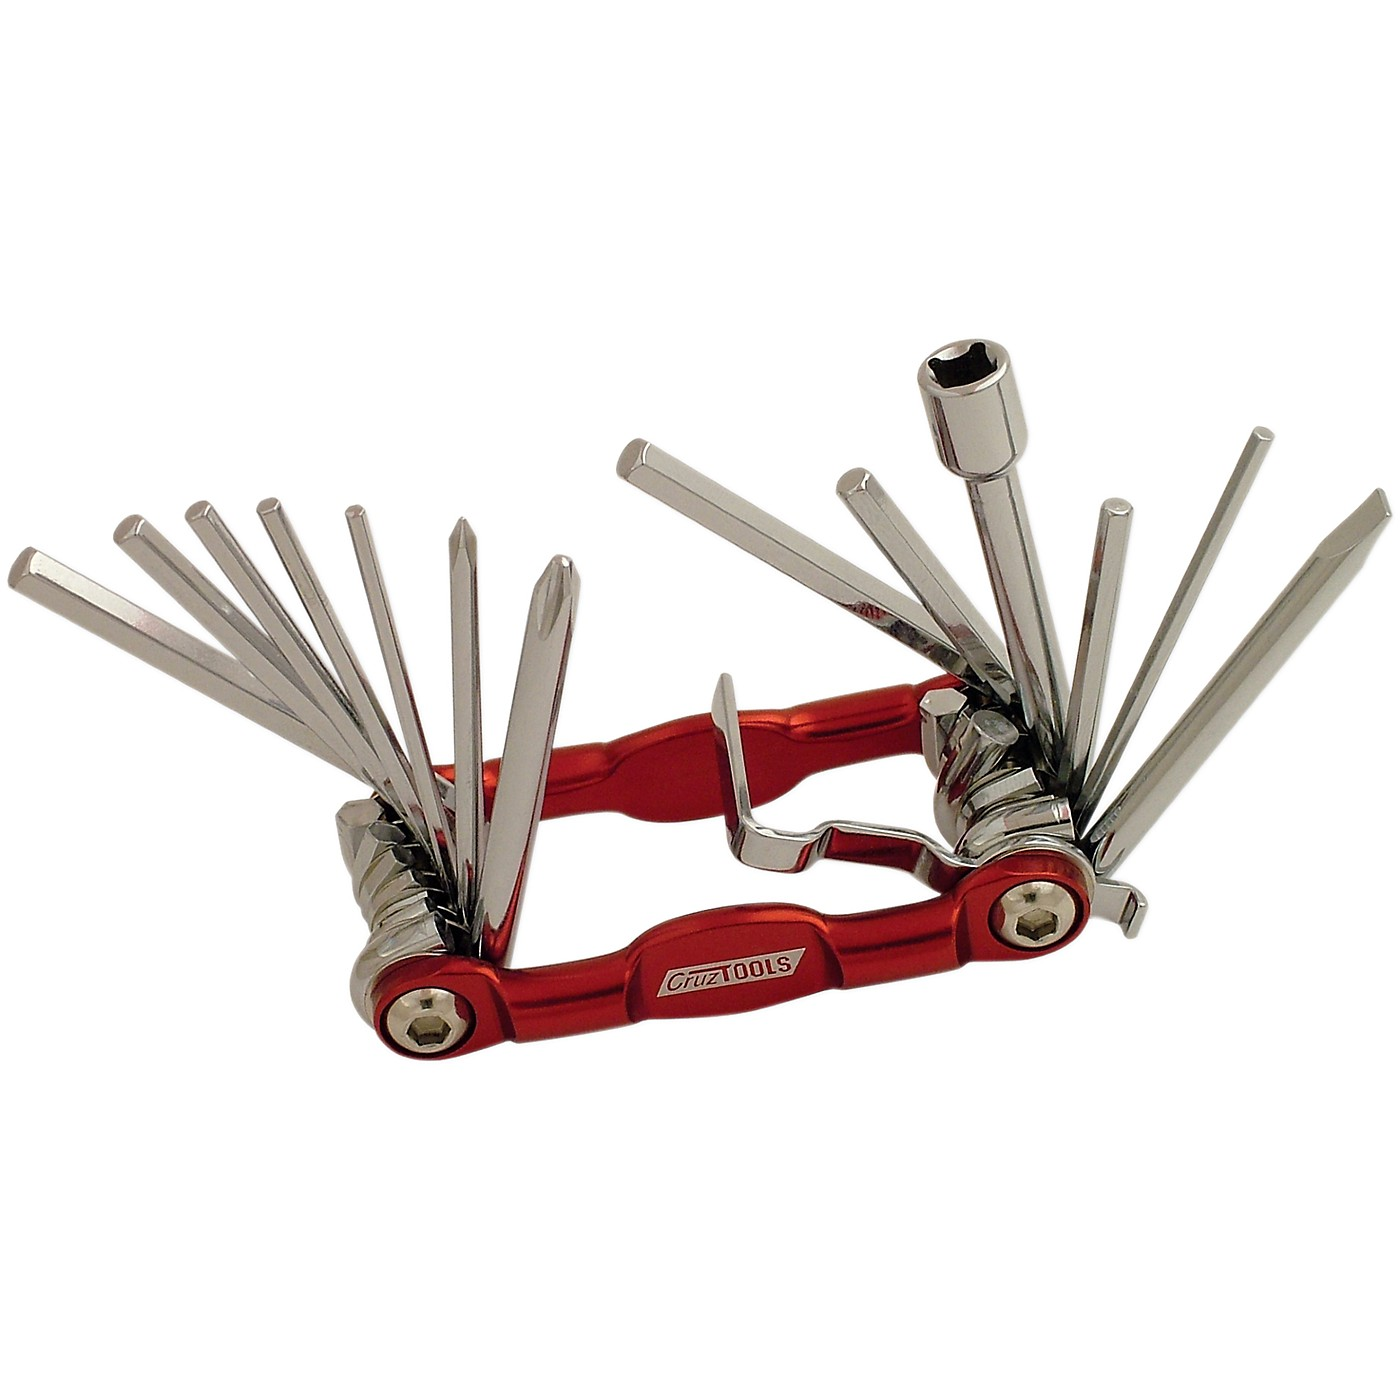 GROOVETECH TOOLS, INC. Drum Multi-Tool thumbnail